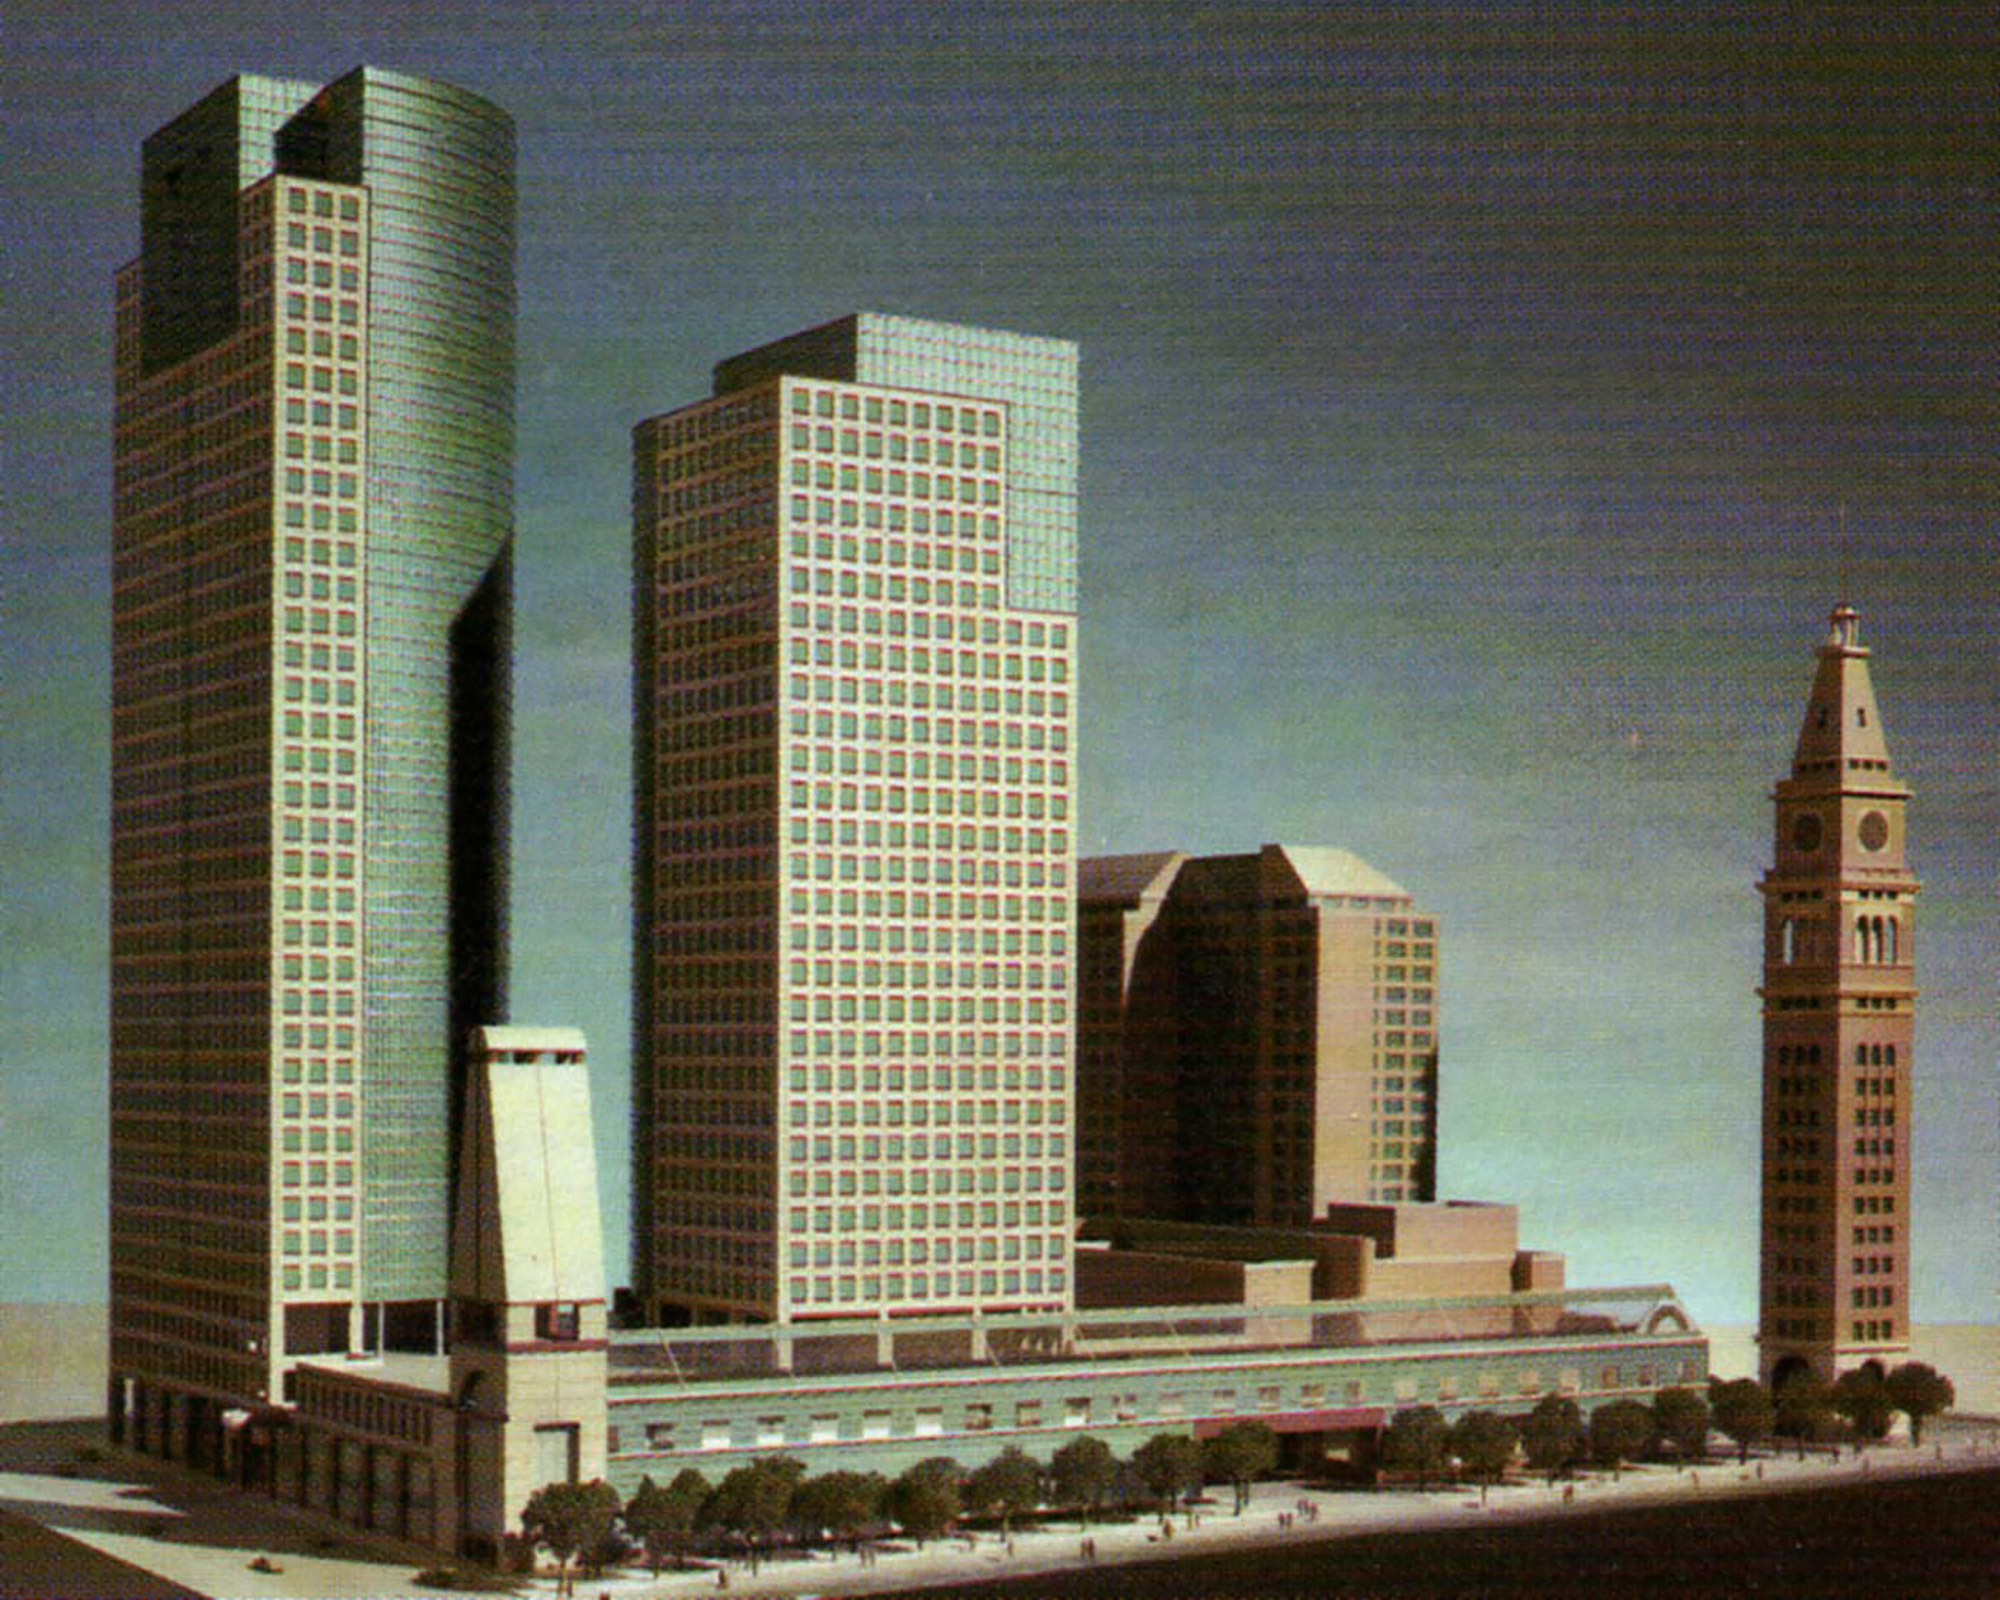 Original Tabor Center concept model from early 1980s